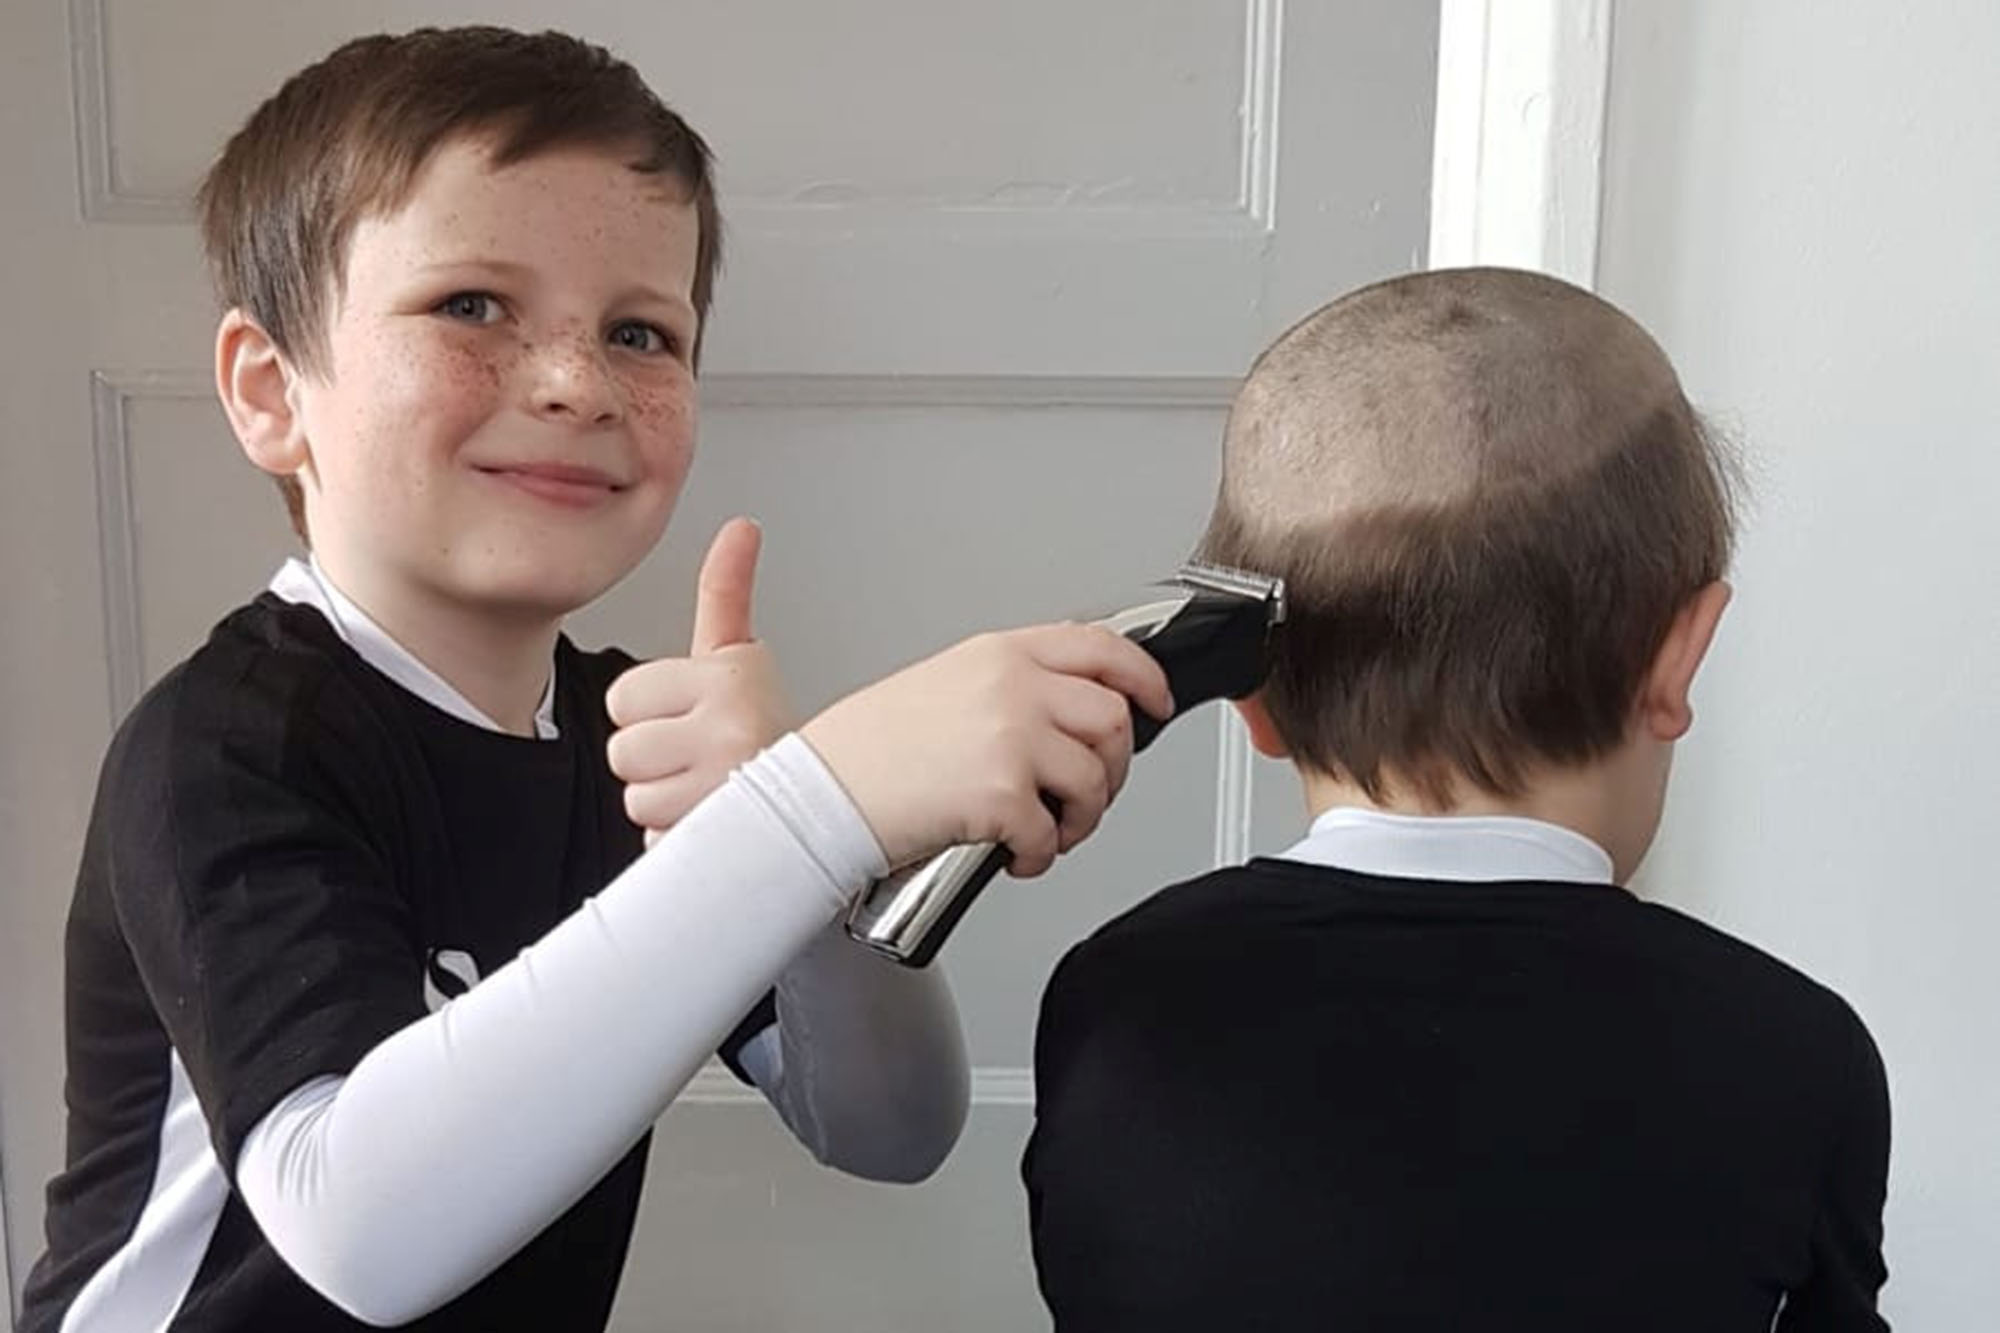 Kid Gets Old Man Haircut After Begging Brother For A Trim